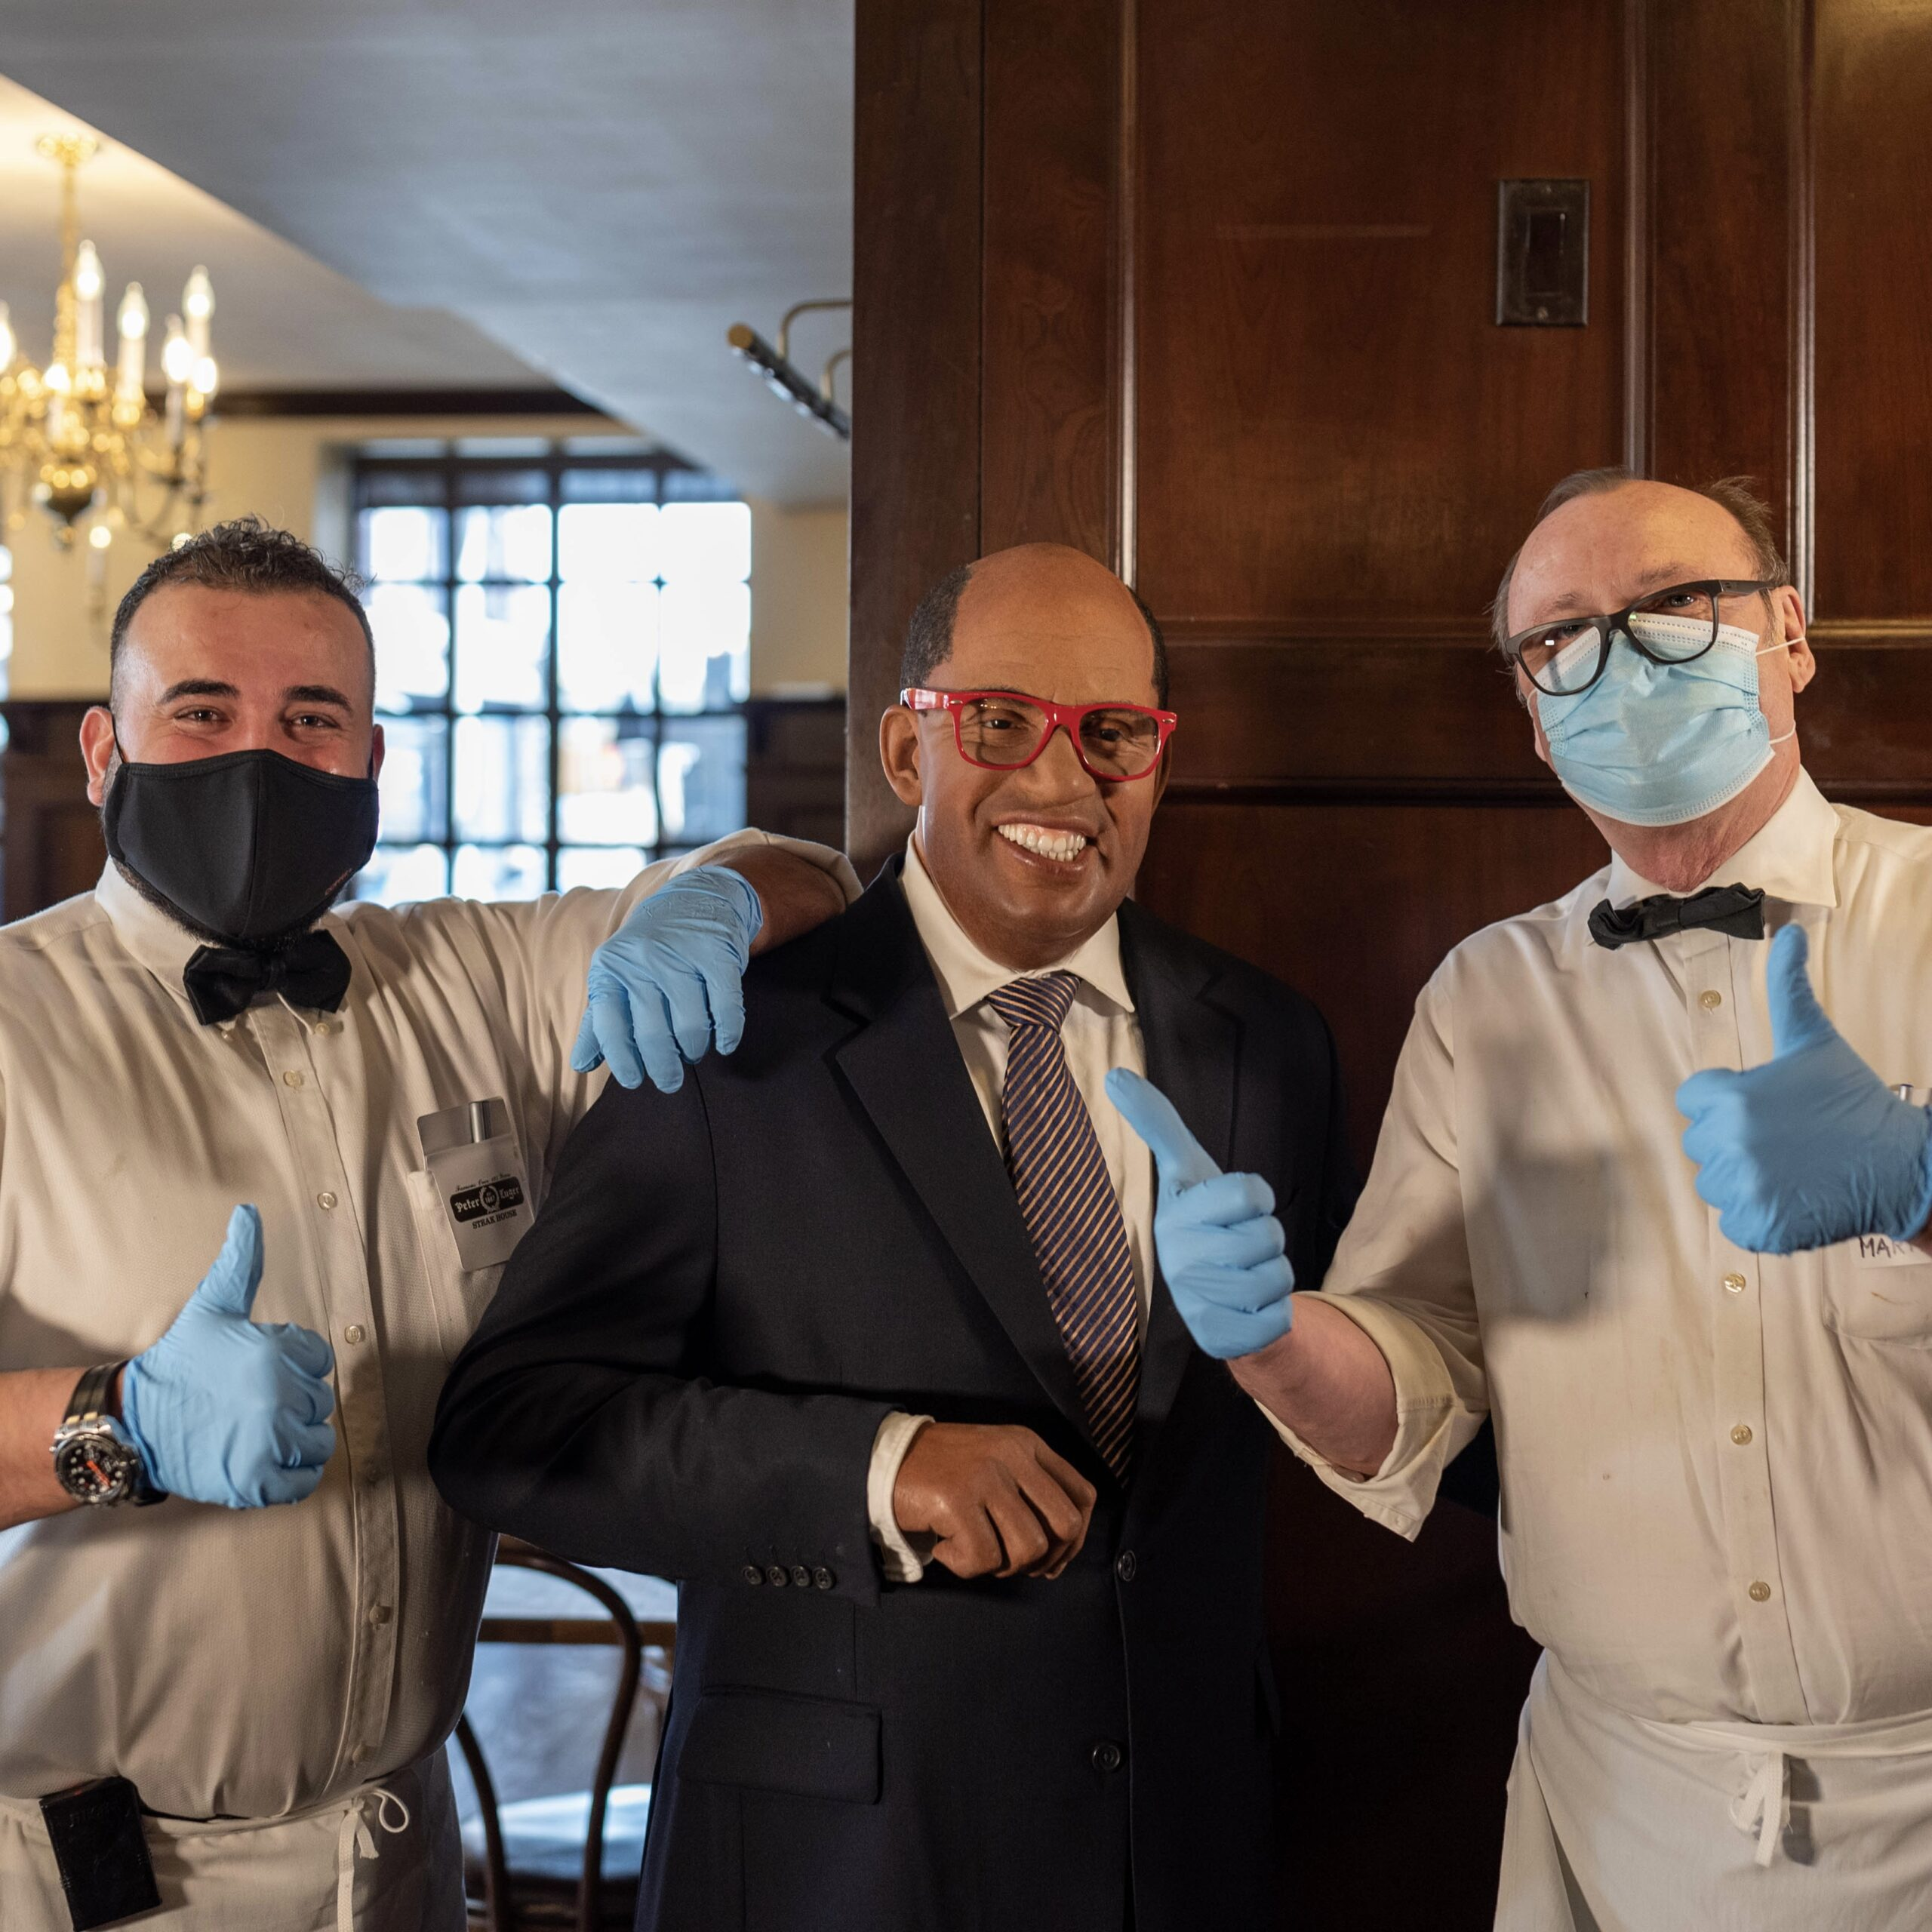 Al Roker by Peter Luger Steakhouse & Madame Tussauds for 360 Magazine